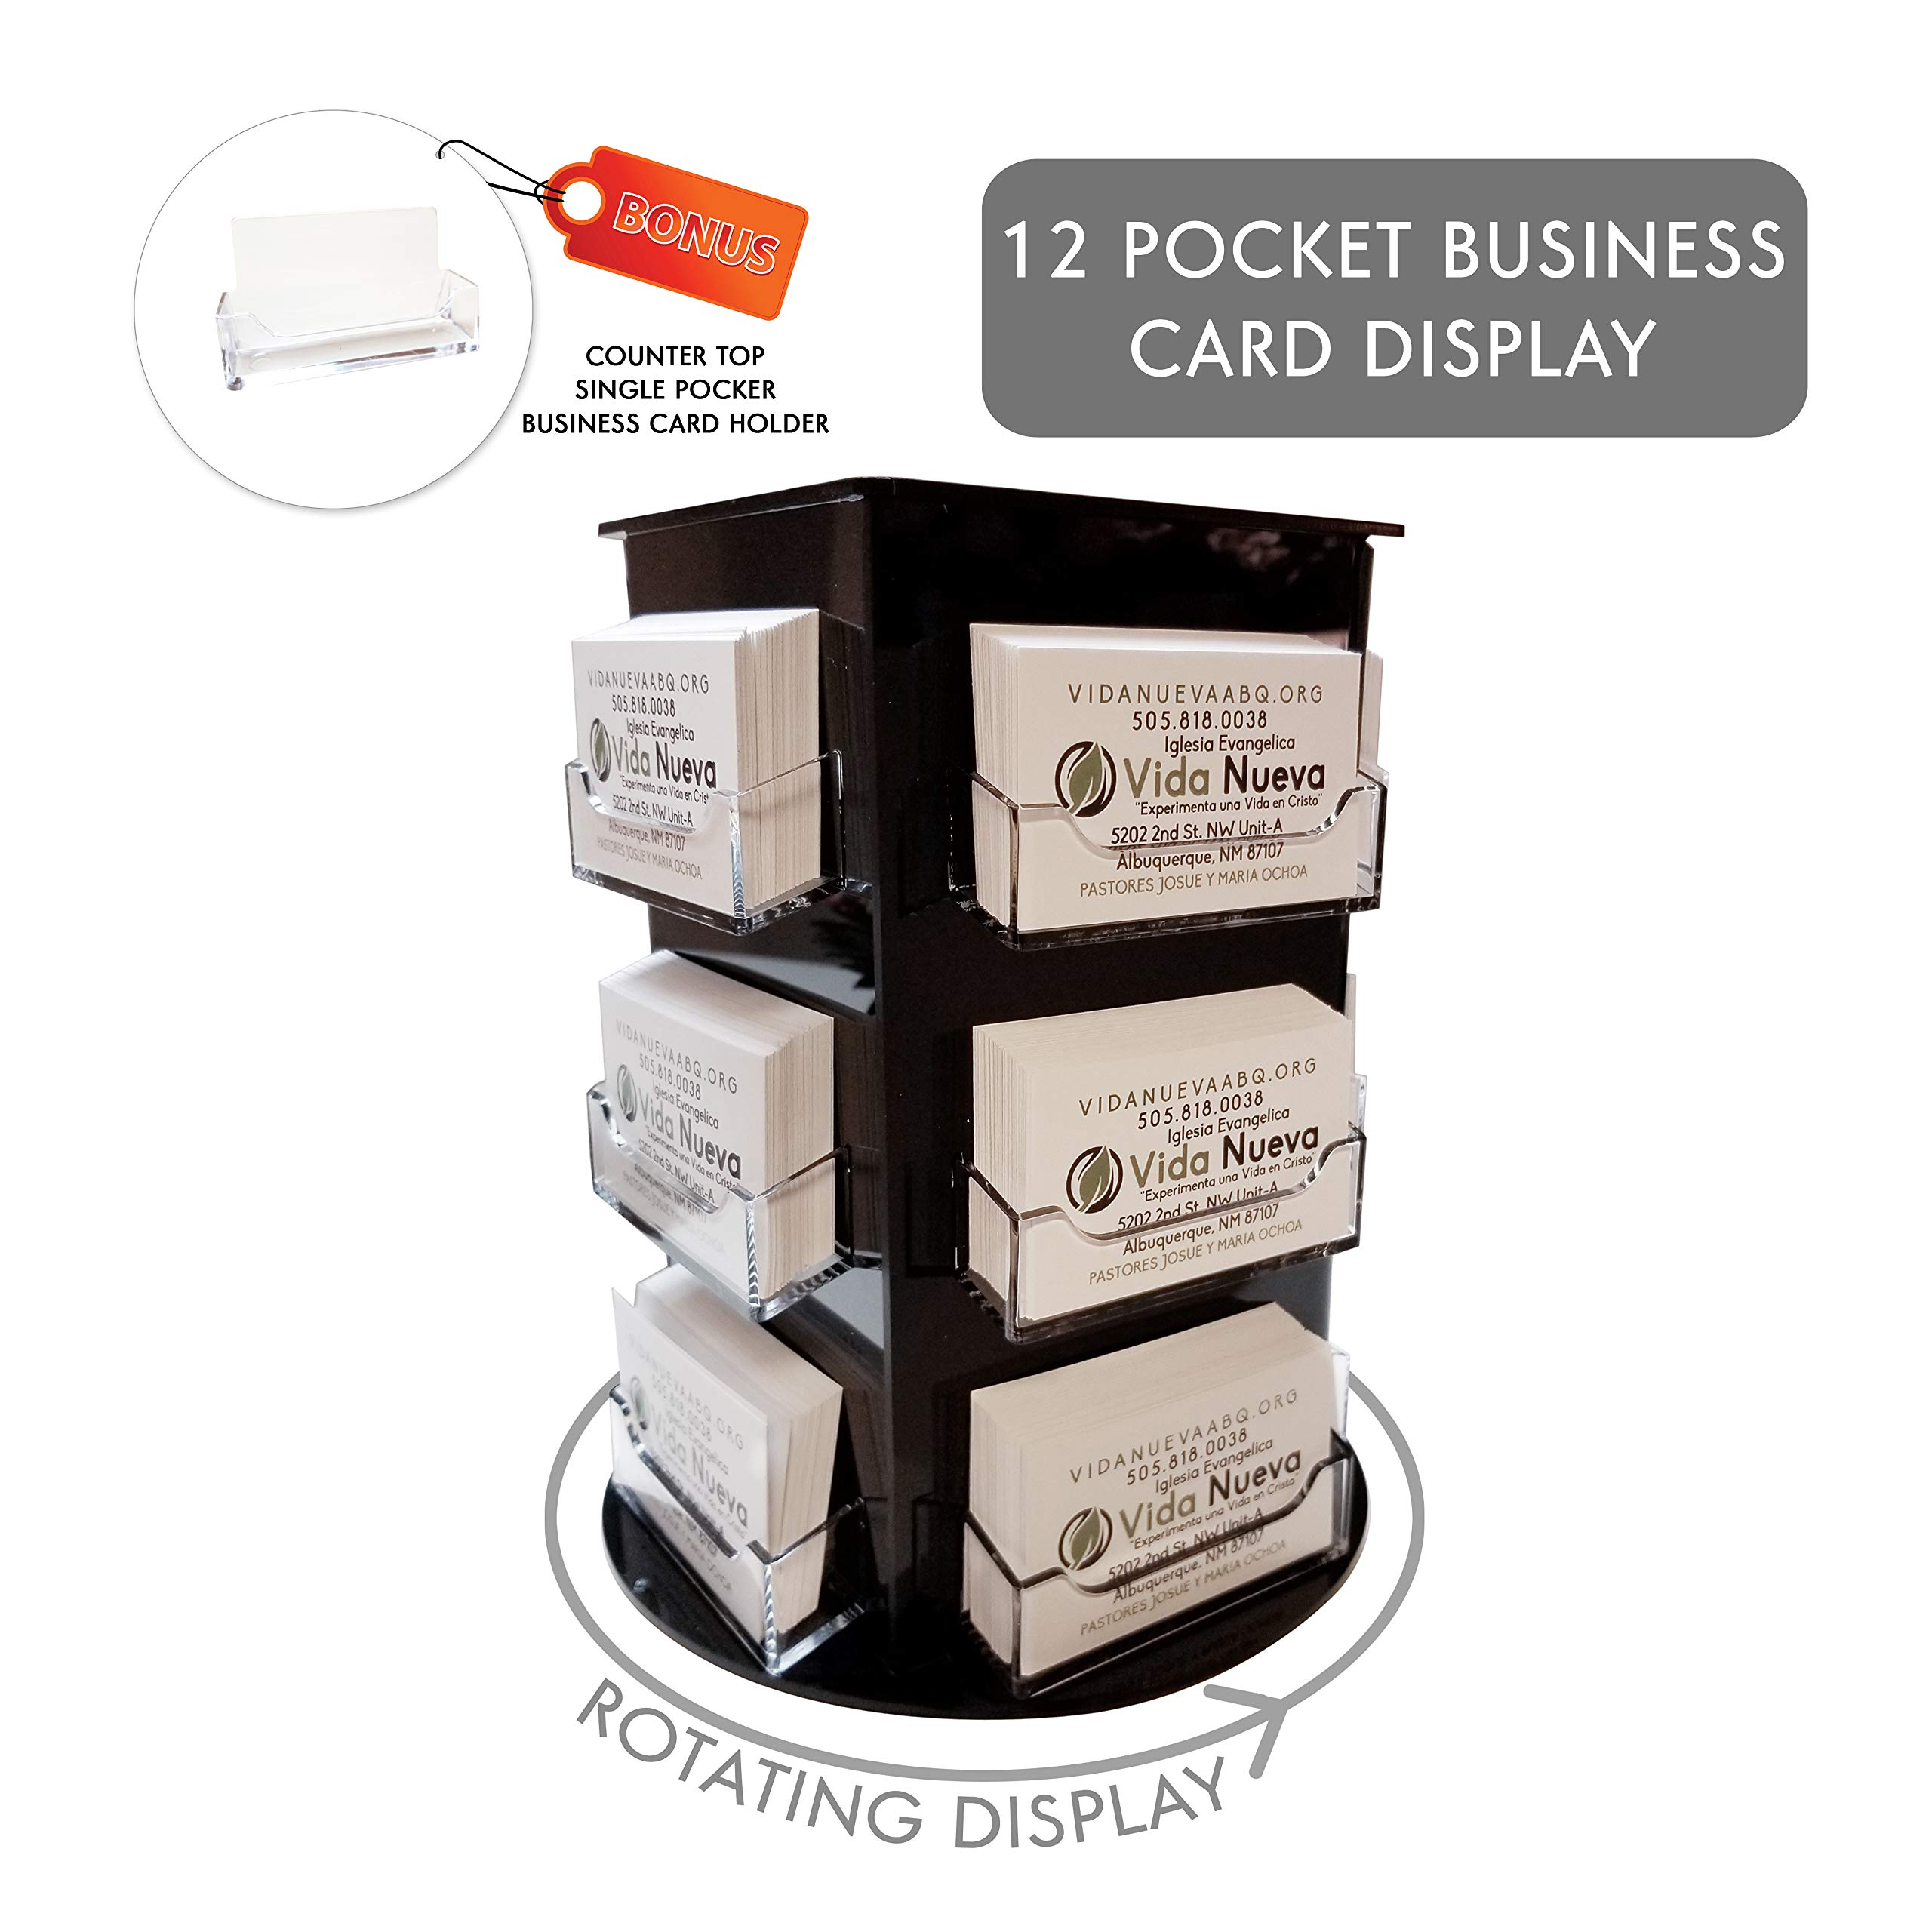 Clear Choice Deluxe Rotating Business Card Display | Great for Medical Offices, Law Firms, Banks, Real Estate Offices, Retail Stores, Schools and Much More | Counter-top Black (12 Pocket)